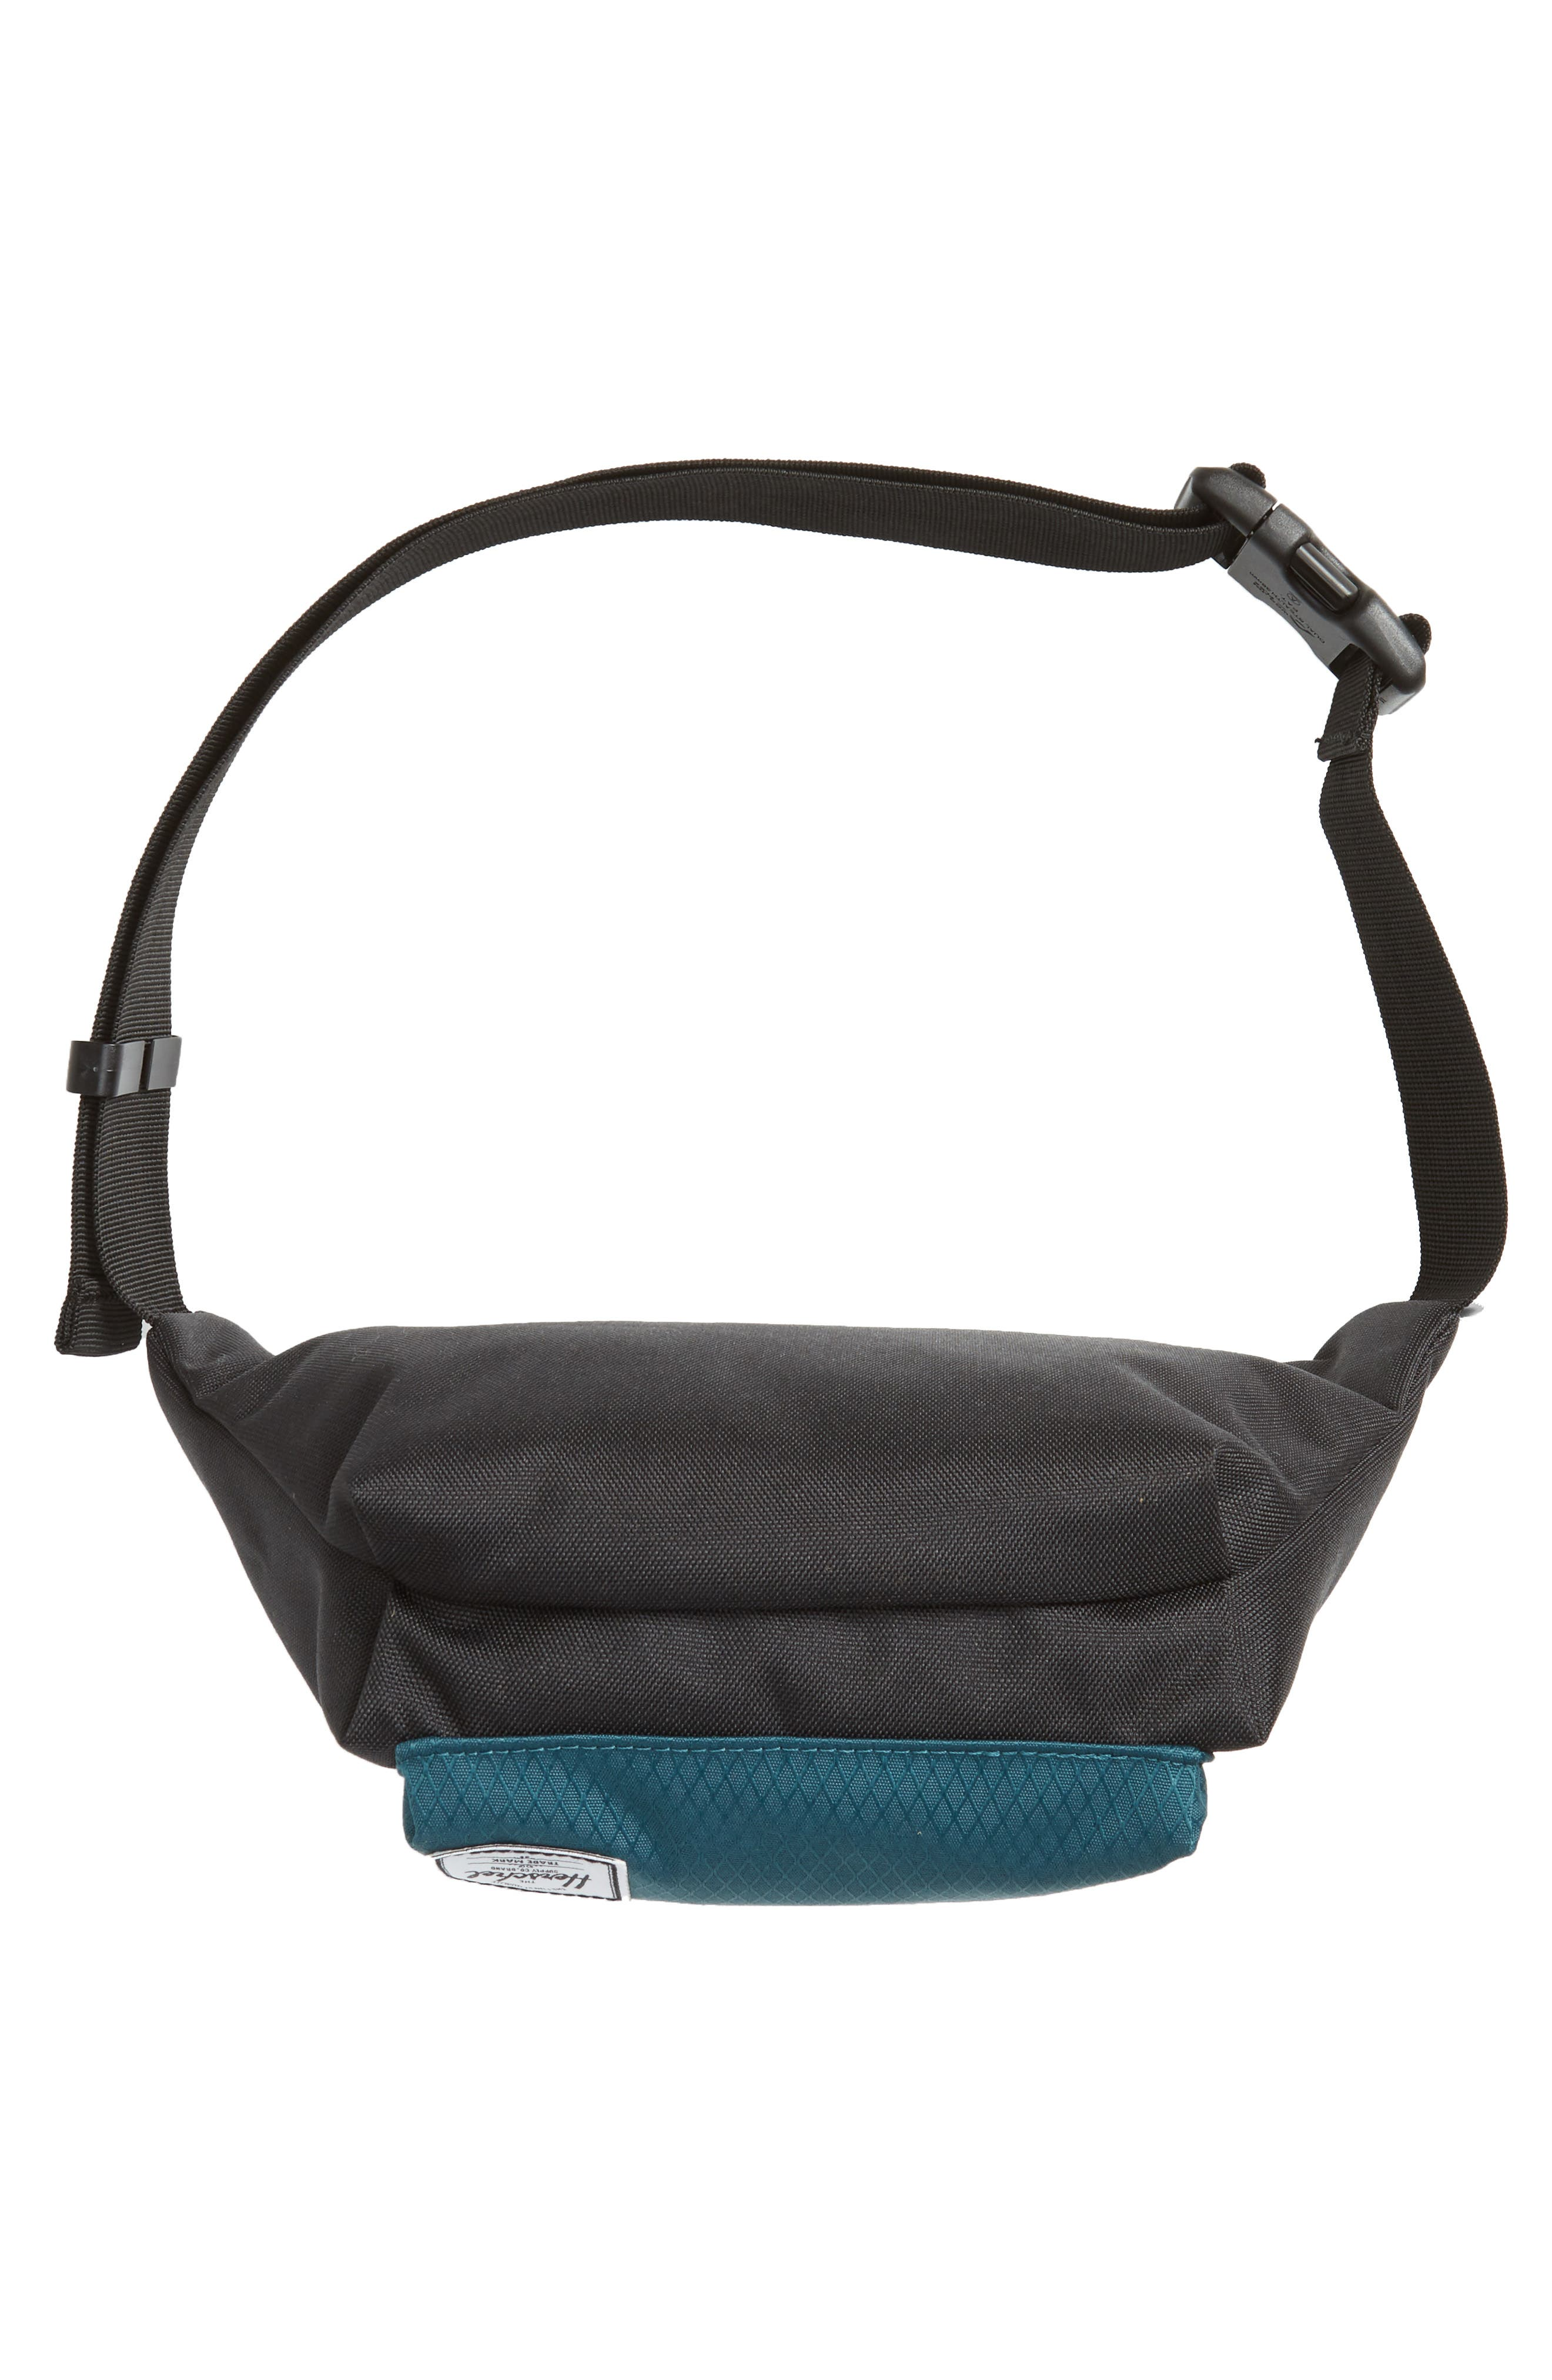 'Seventeen' Belt Bag,                             Alternate thumbnail 7, color,                             BLACK/ DEEP TEAL